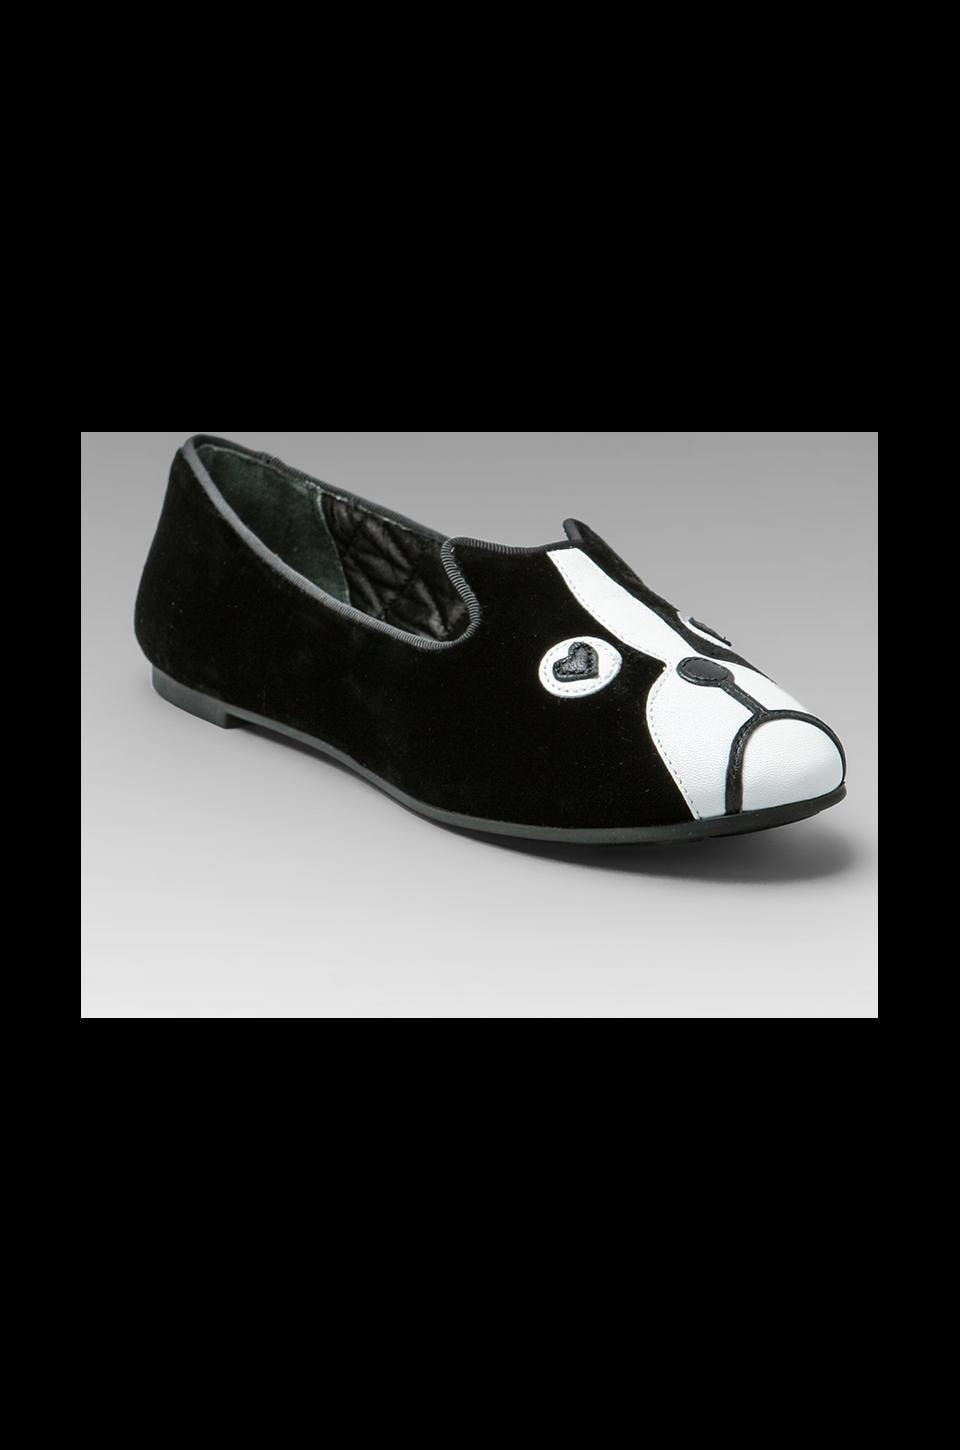 Marc by Marc Jacobs Friends of Mine Shorty Loafer in Black/White/Black/Black